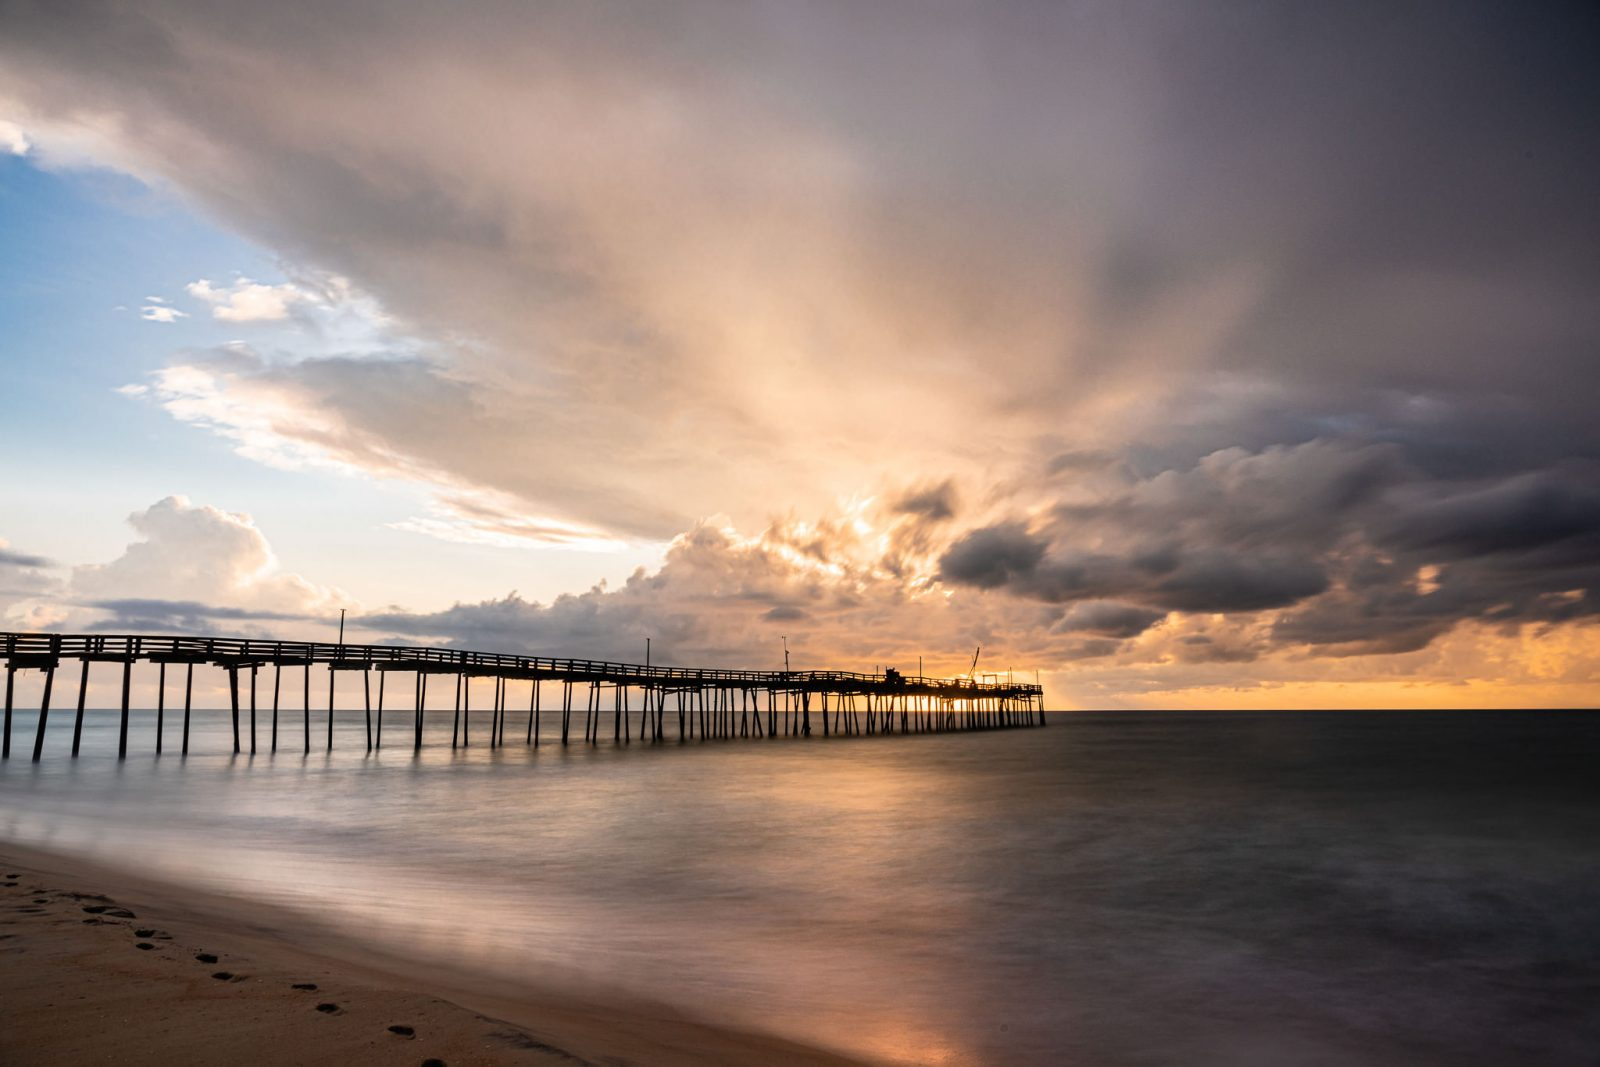 Clearing Storm at the Avon Fishing Pier